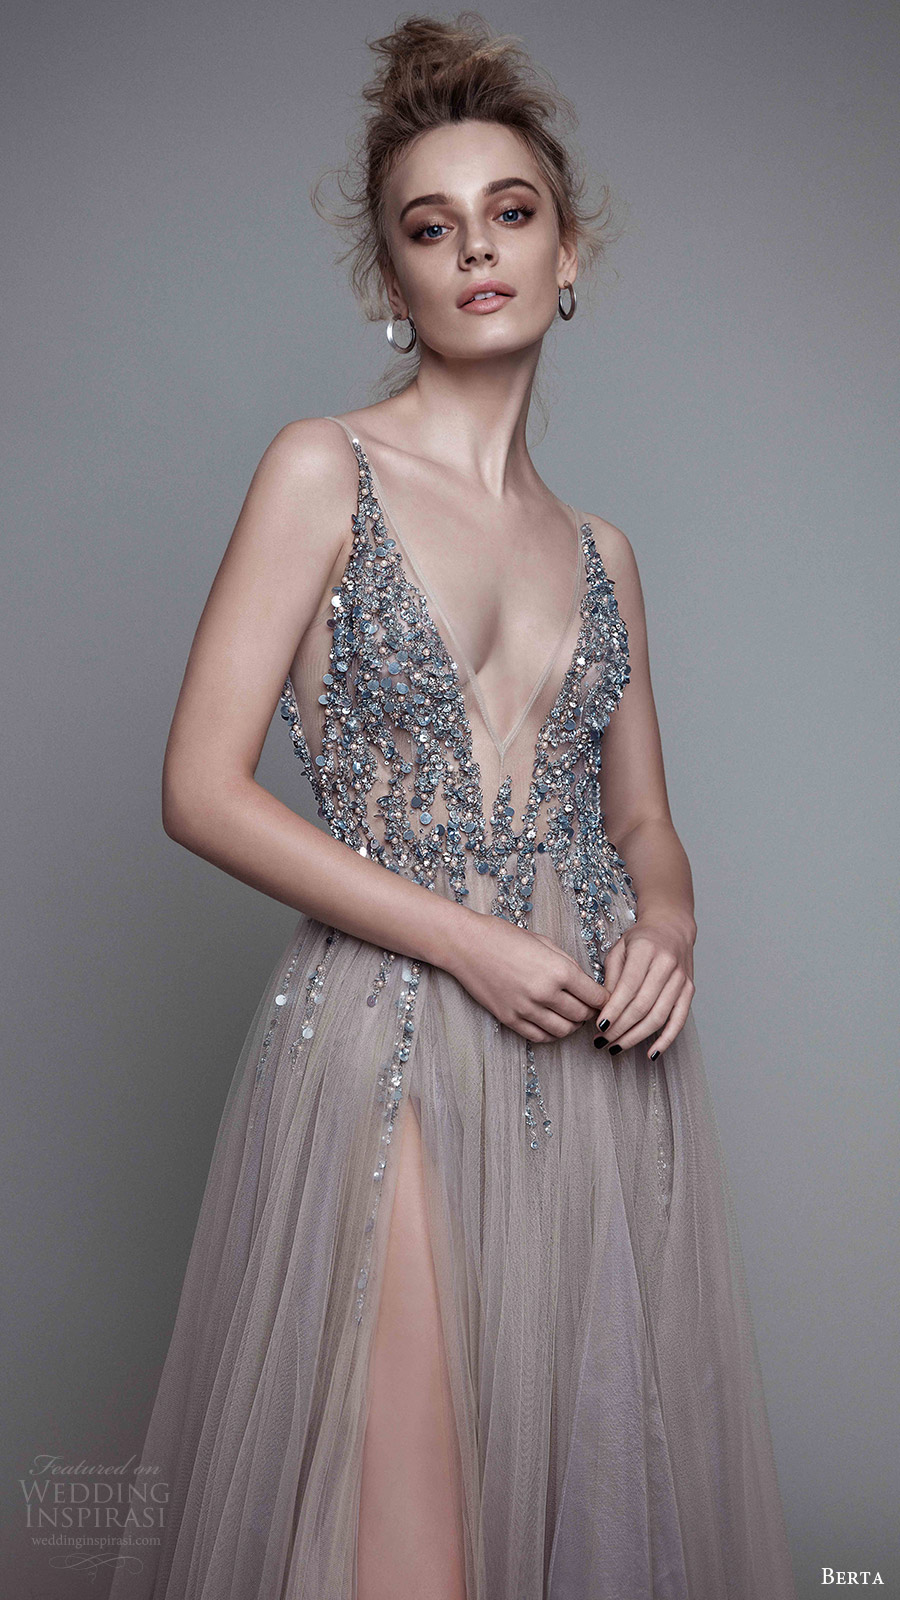 Wedding Berta Fall 2017 Ready To Wear Collection Rumor Bus